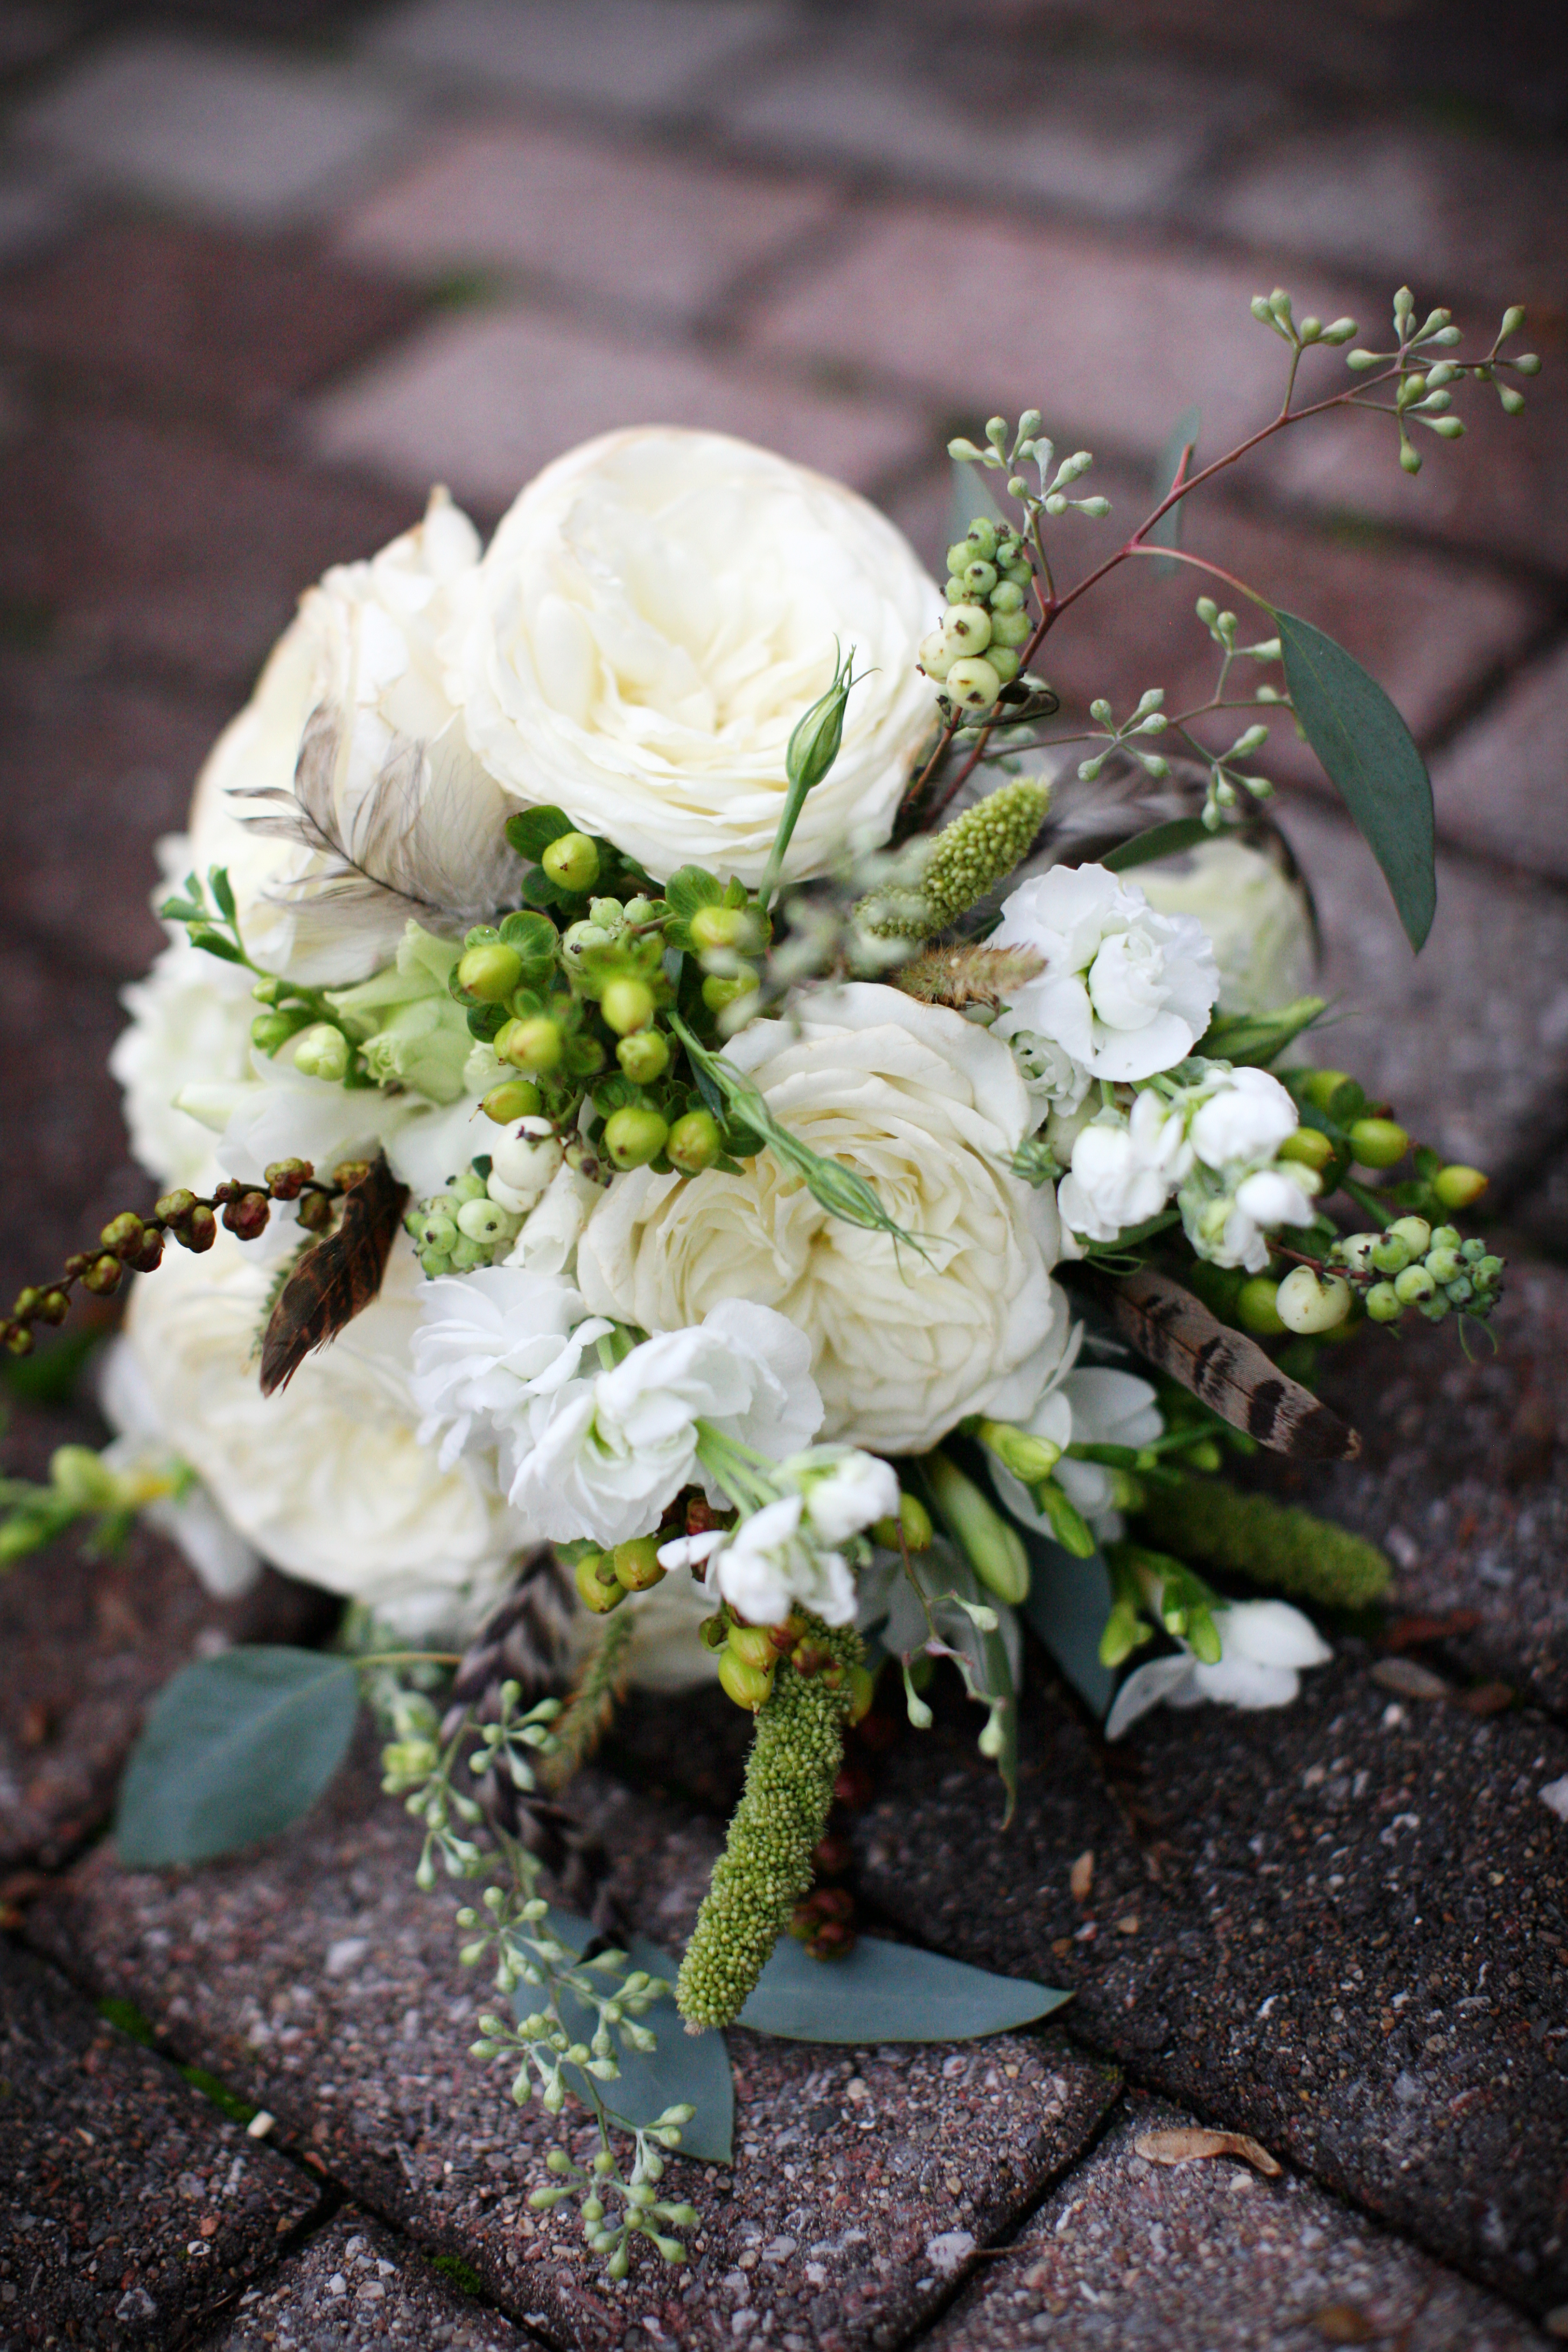 ivory, green, brown, Fall, Vintage, Rustic, Bouquets, Autumn, Natural, Whimsy, Woodland, Courtney sawyer